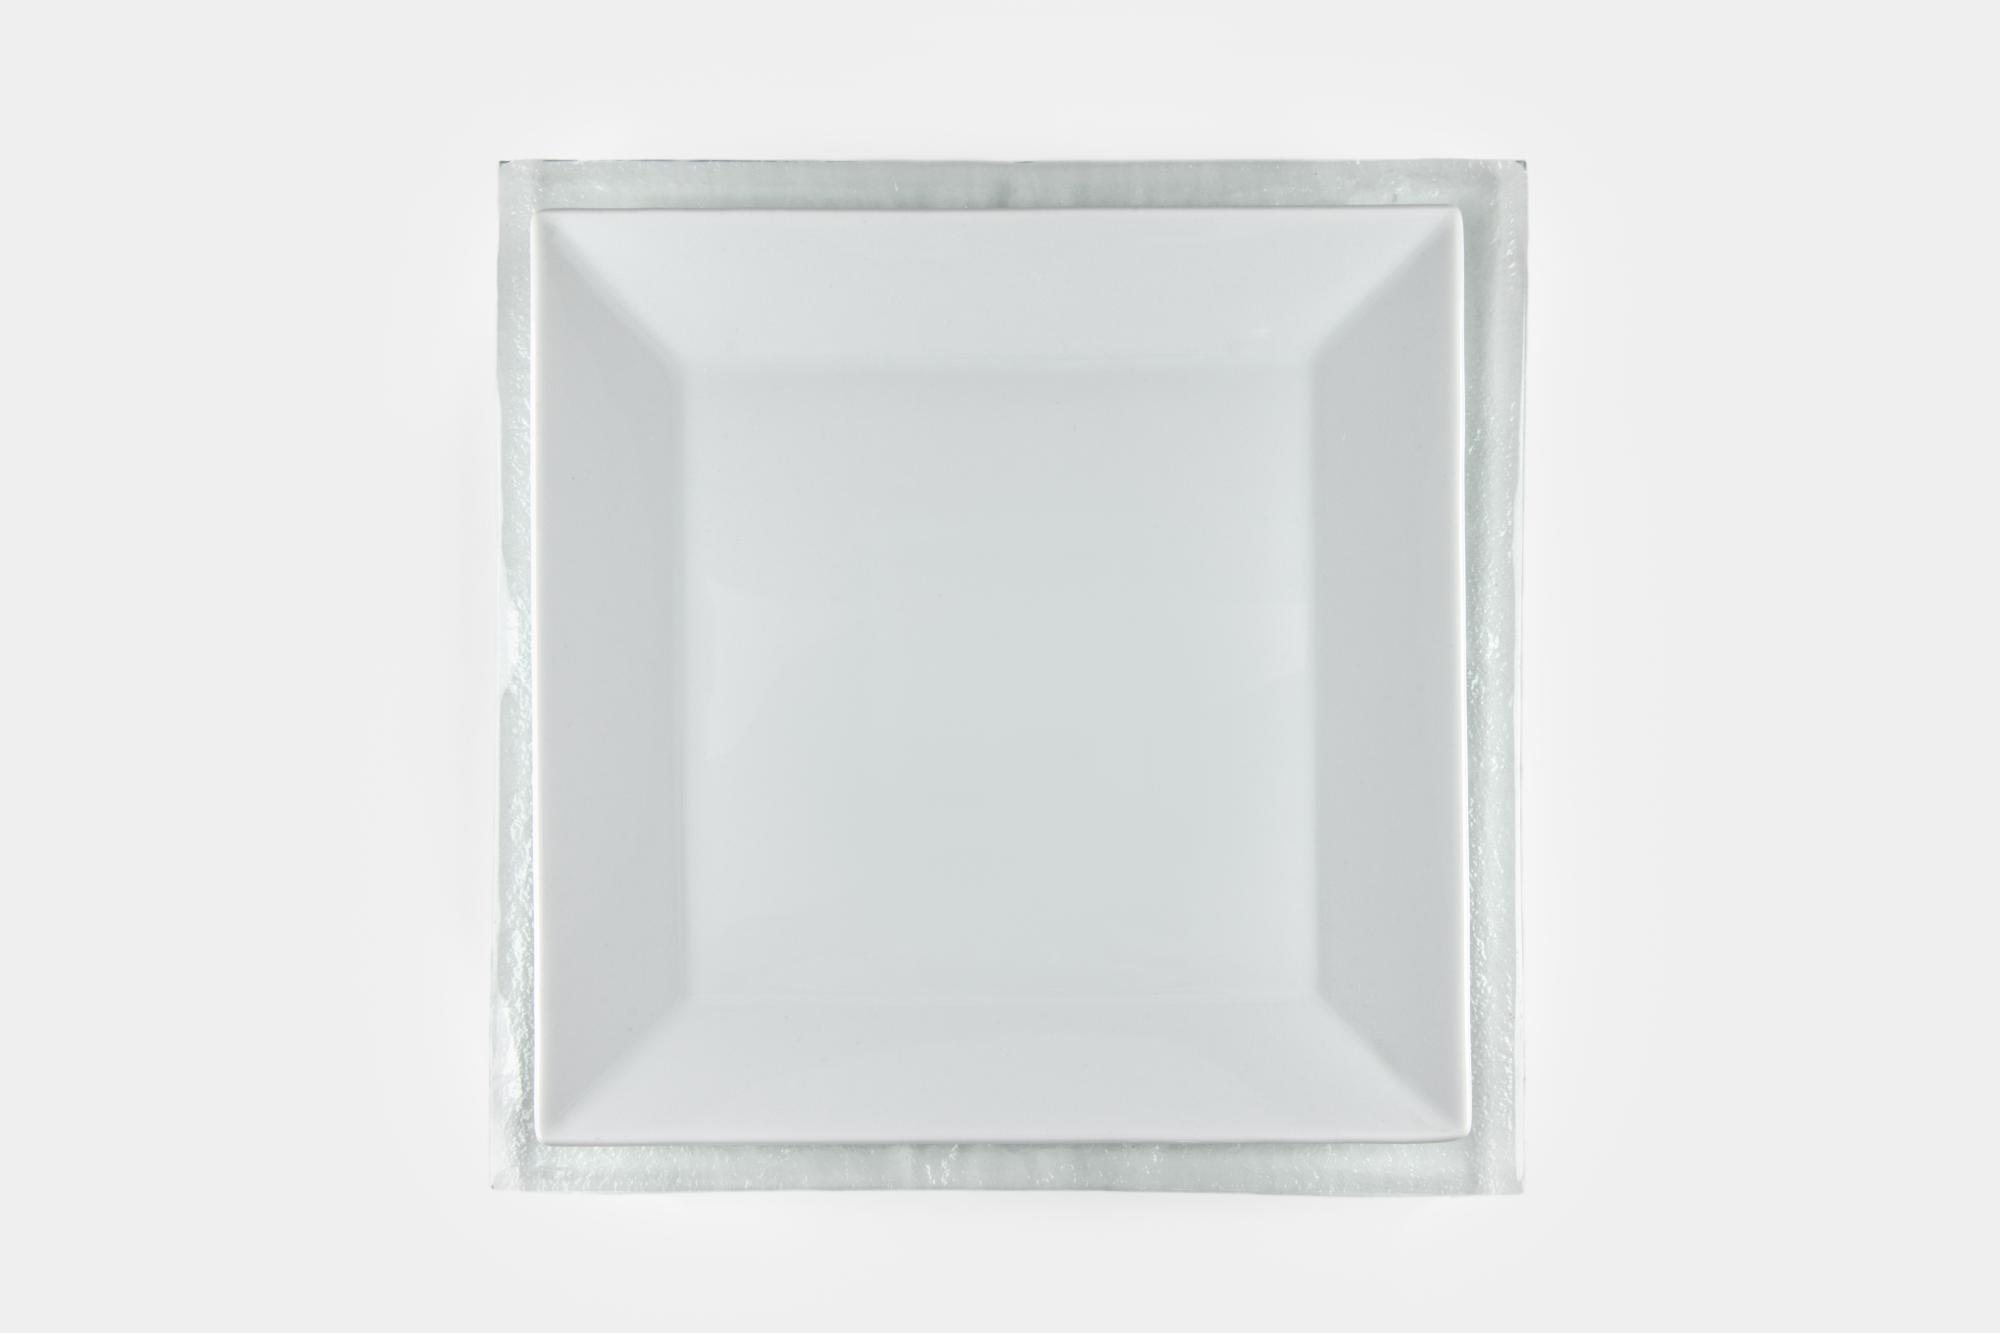 Square glass charger - Image 1